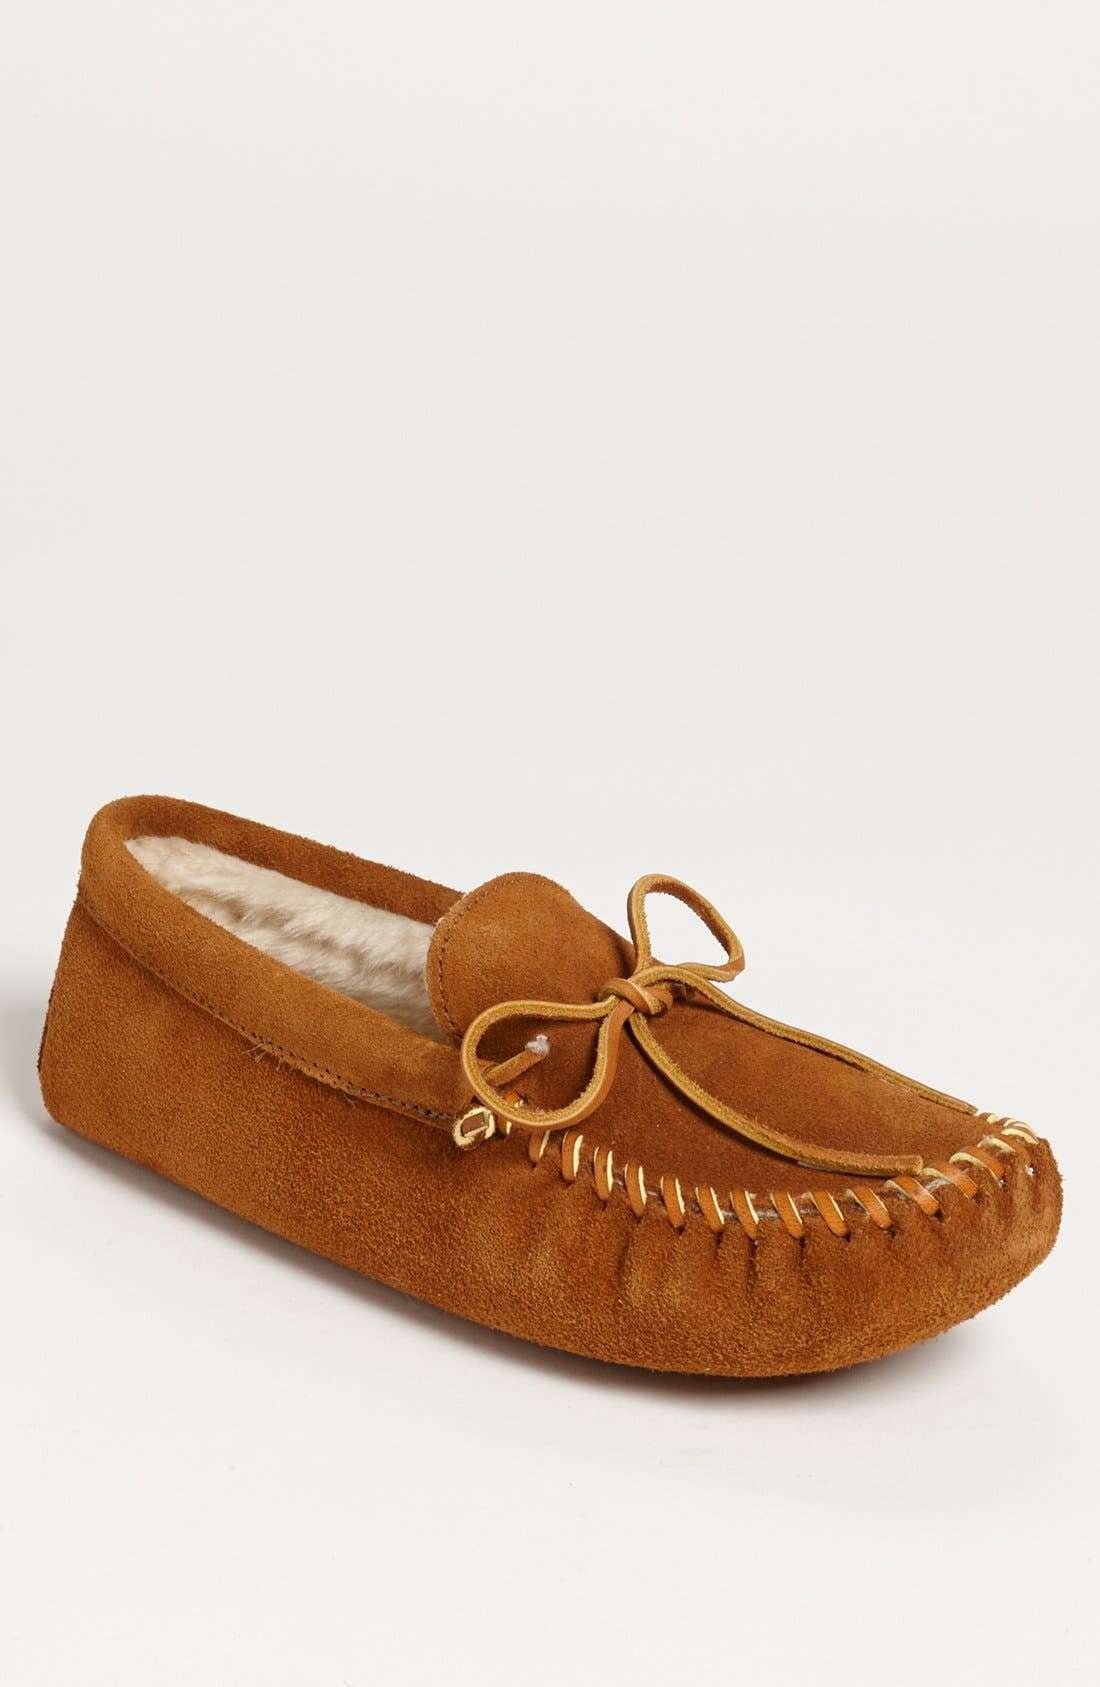 MINNETONKA Suede Moccasin with Faux Fur Lining